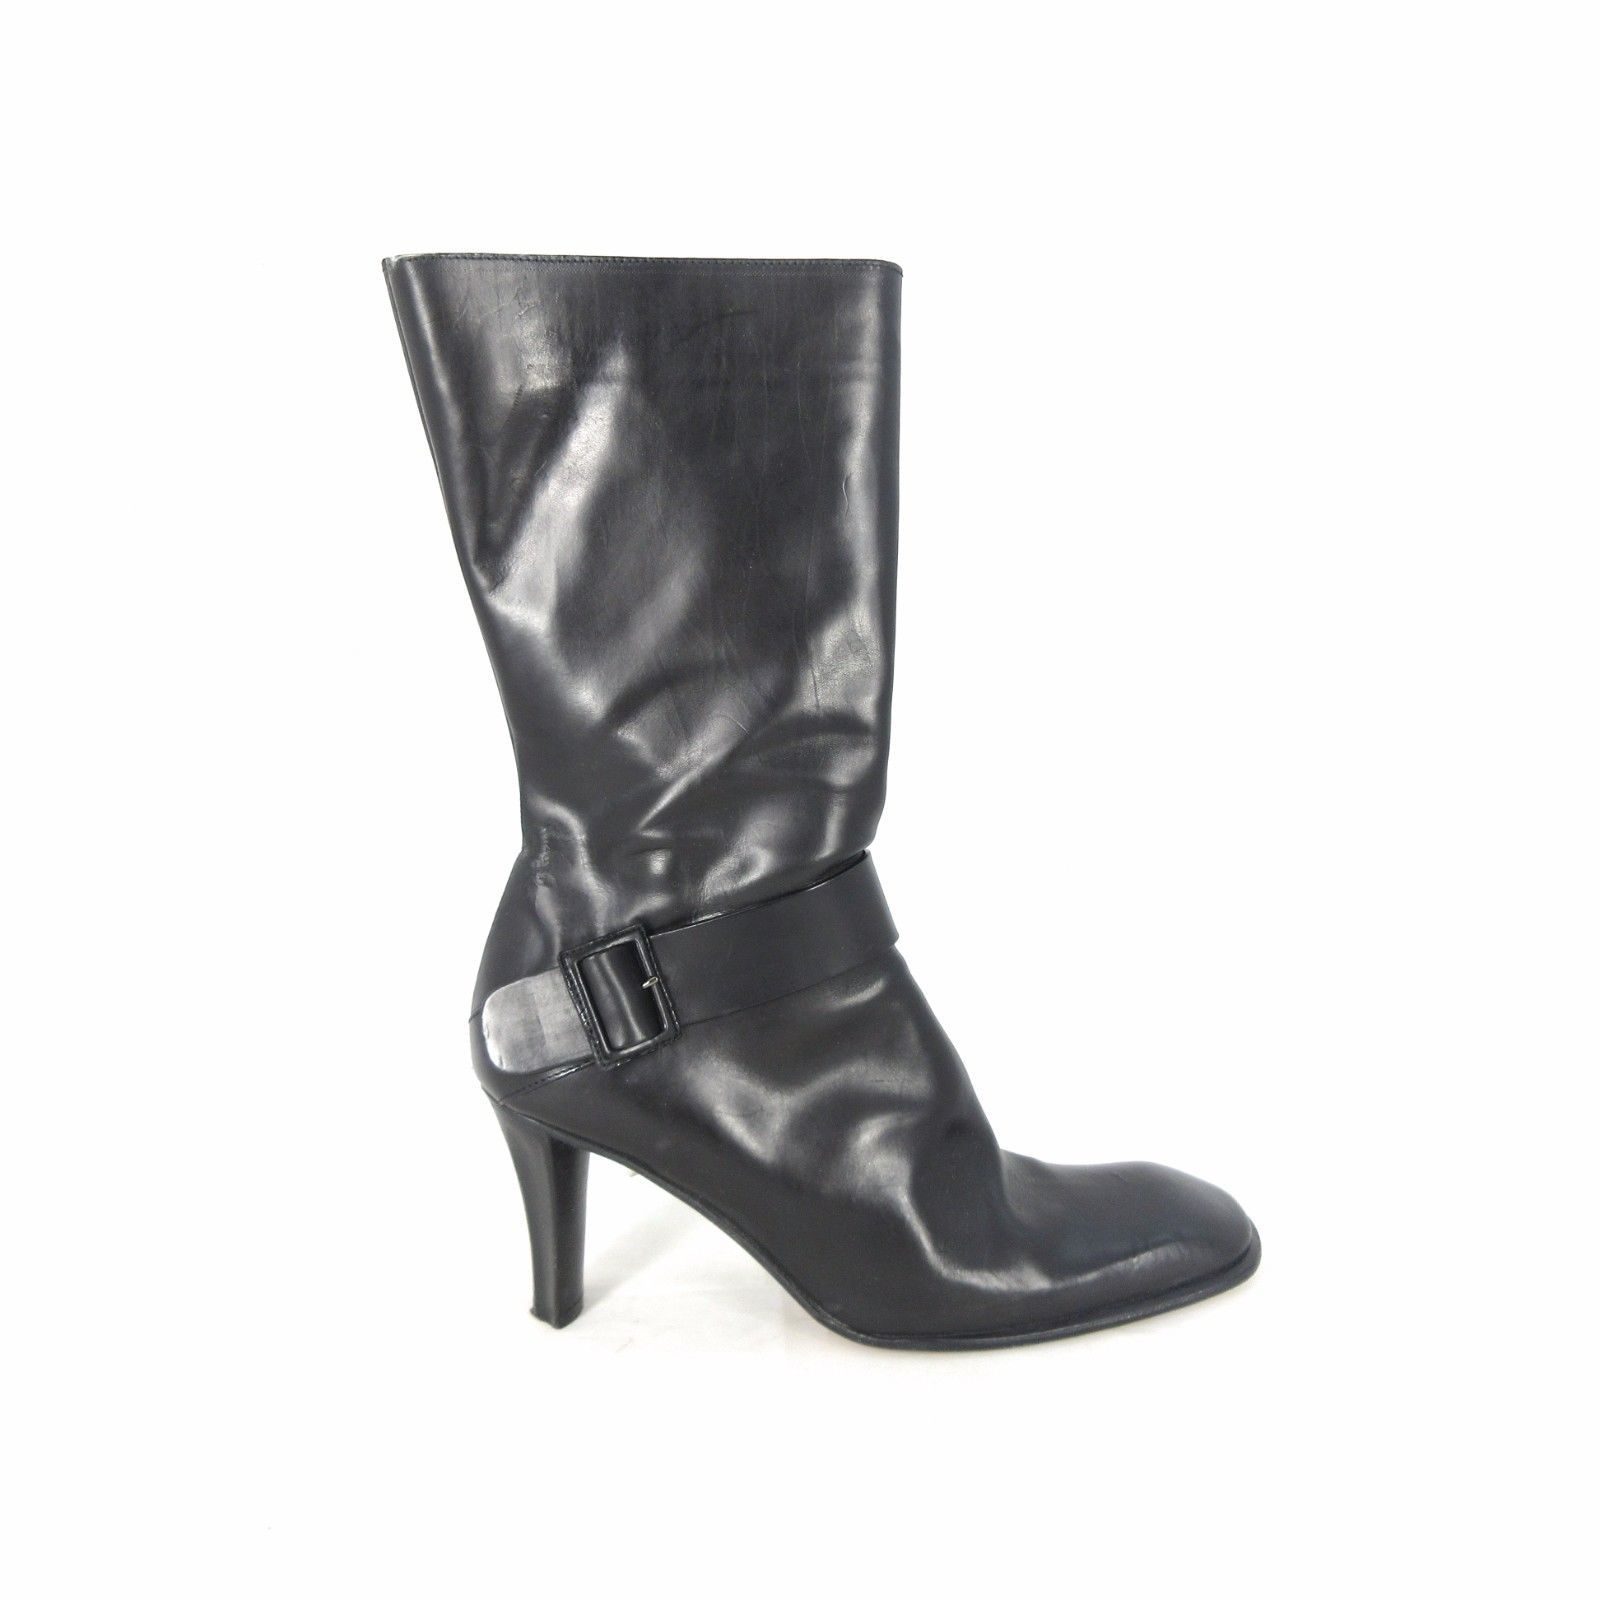 5182a9c83a908 39.5 / 9 US - COSTUME NATIONAL Black Leather Heeled Mid Calf Boots ...